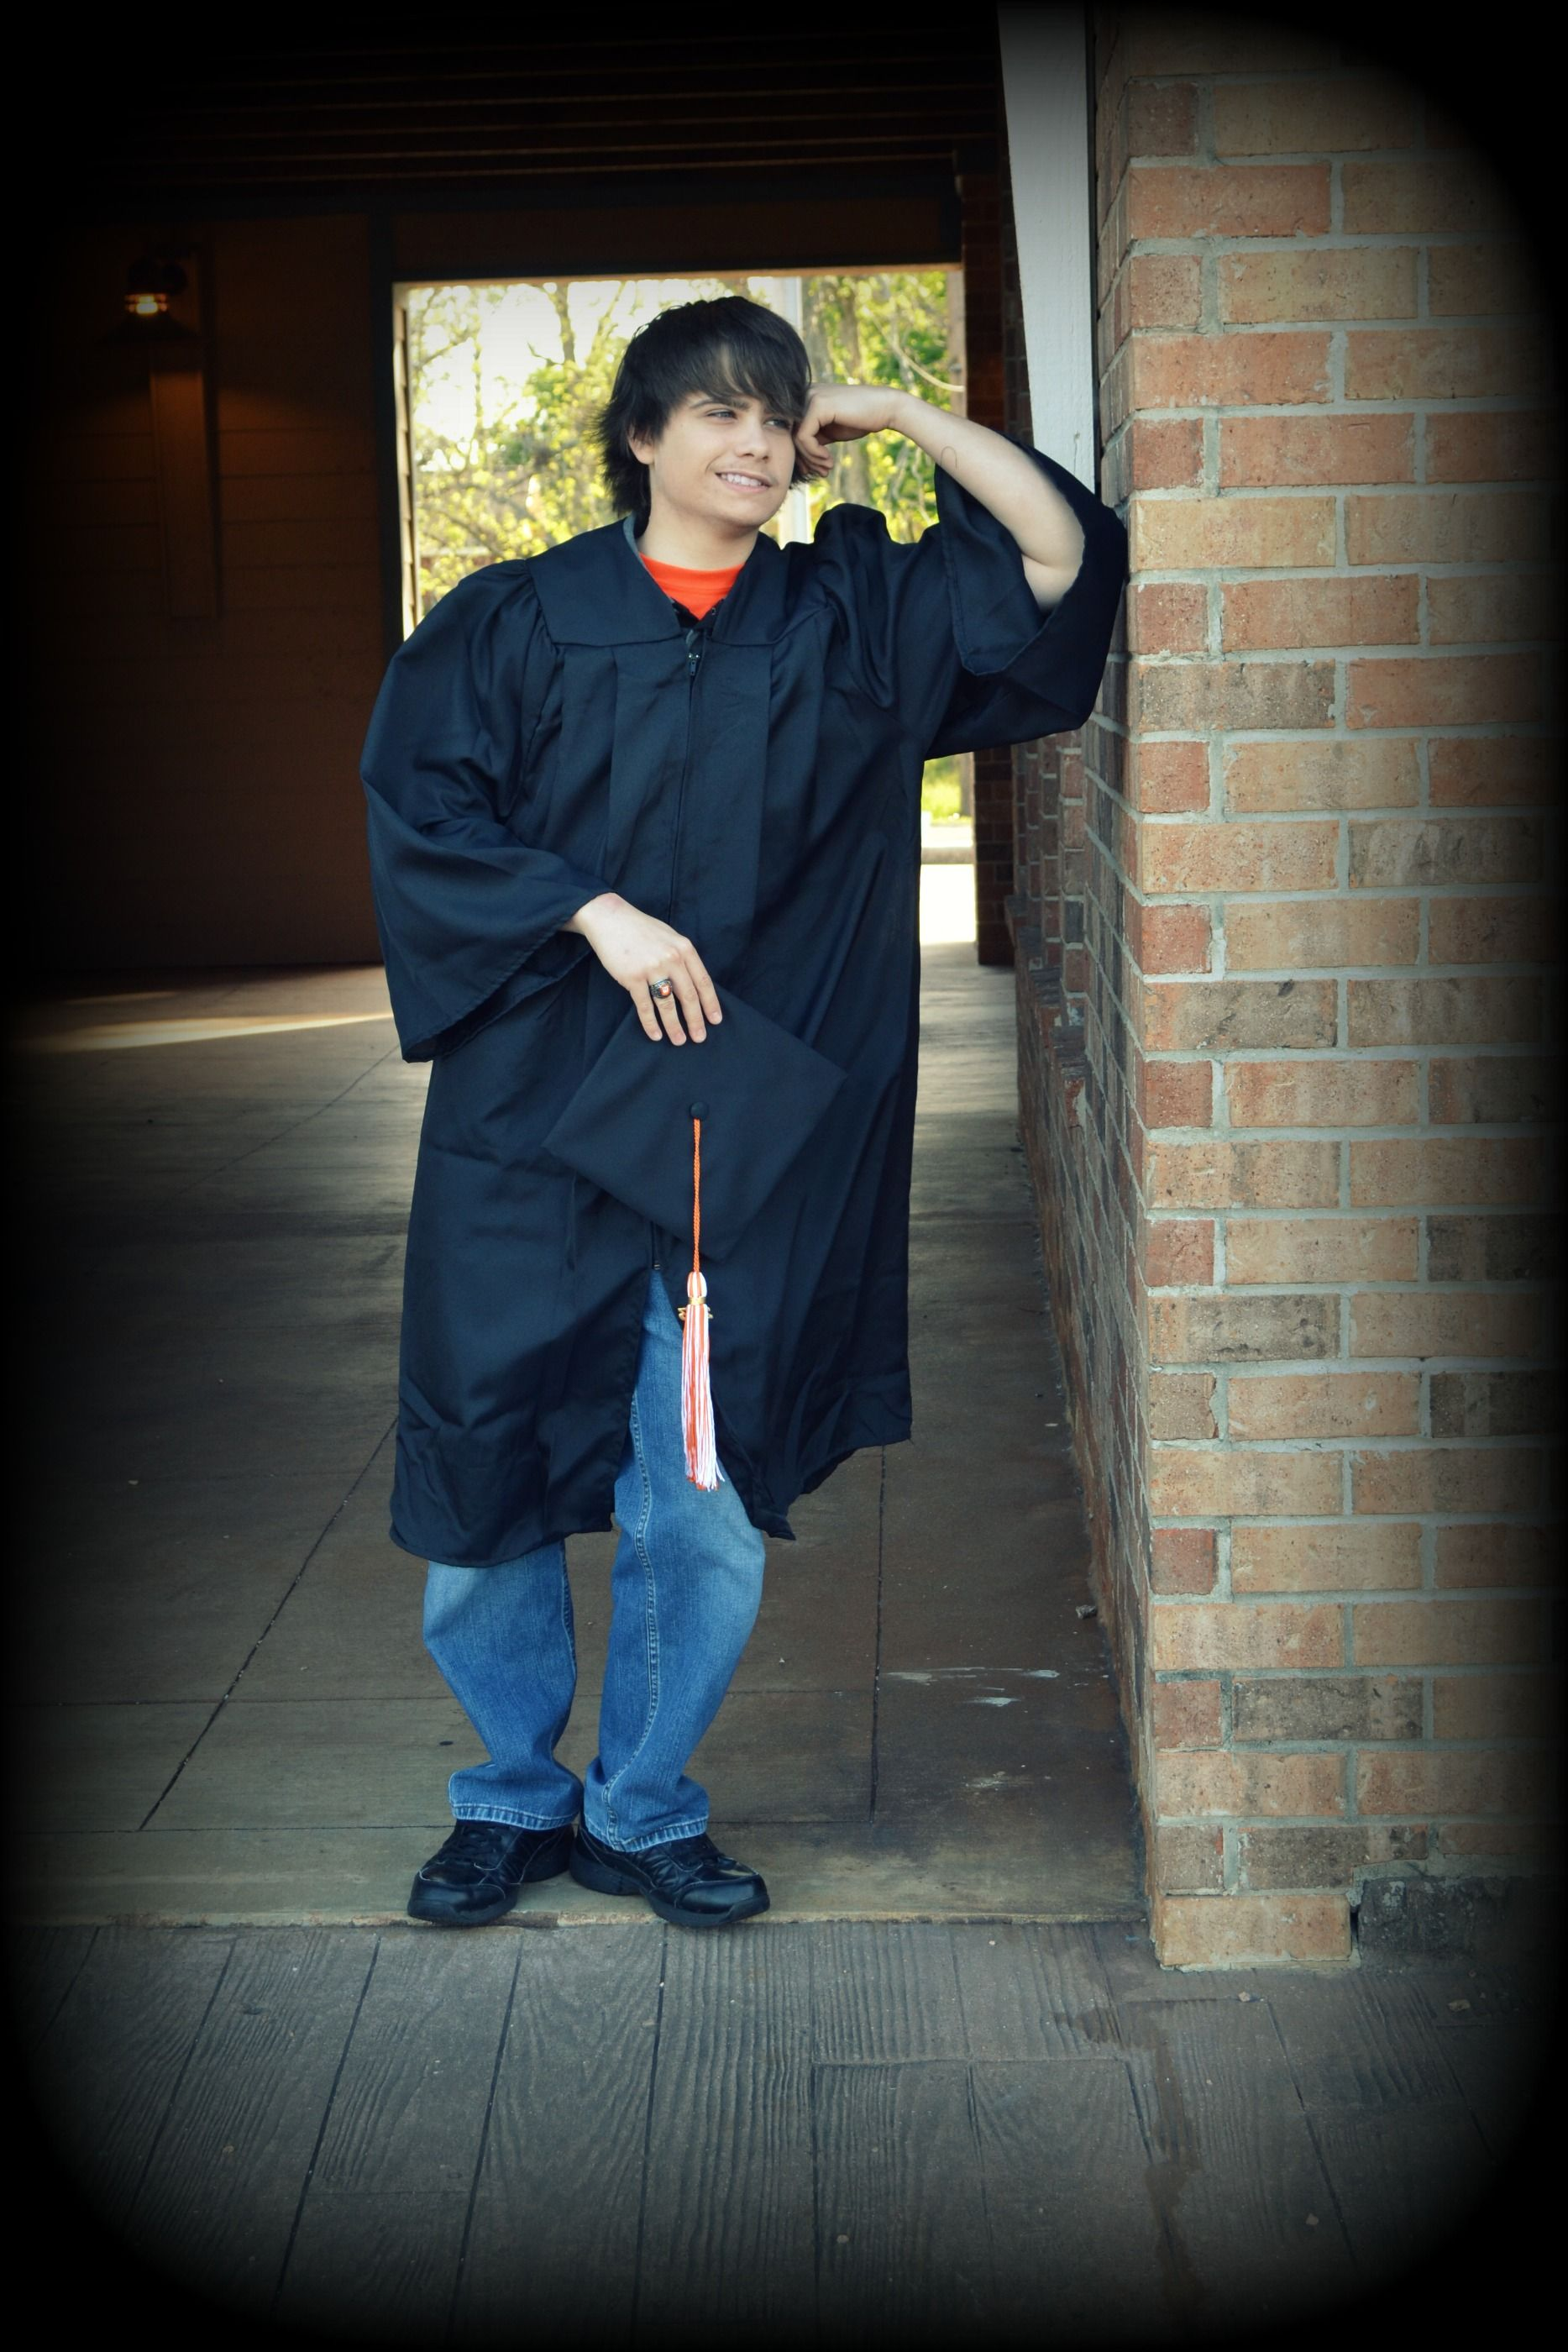 graduation #senior #ring #highschool #High school #guy #cap and gown ...